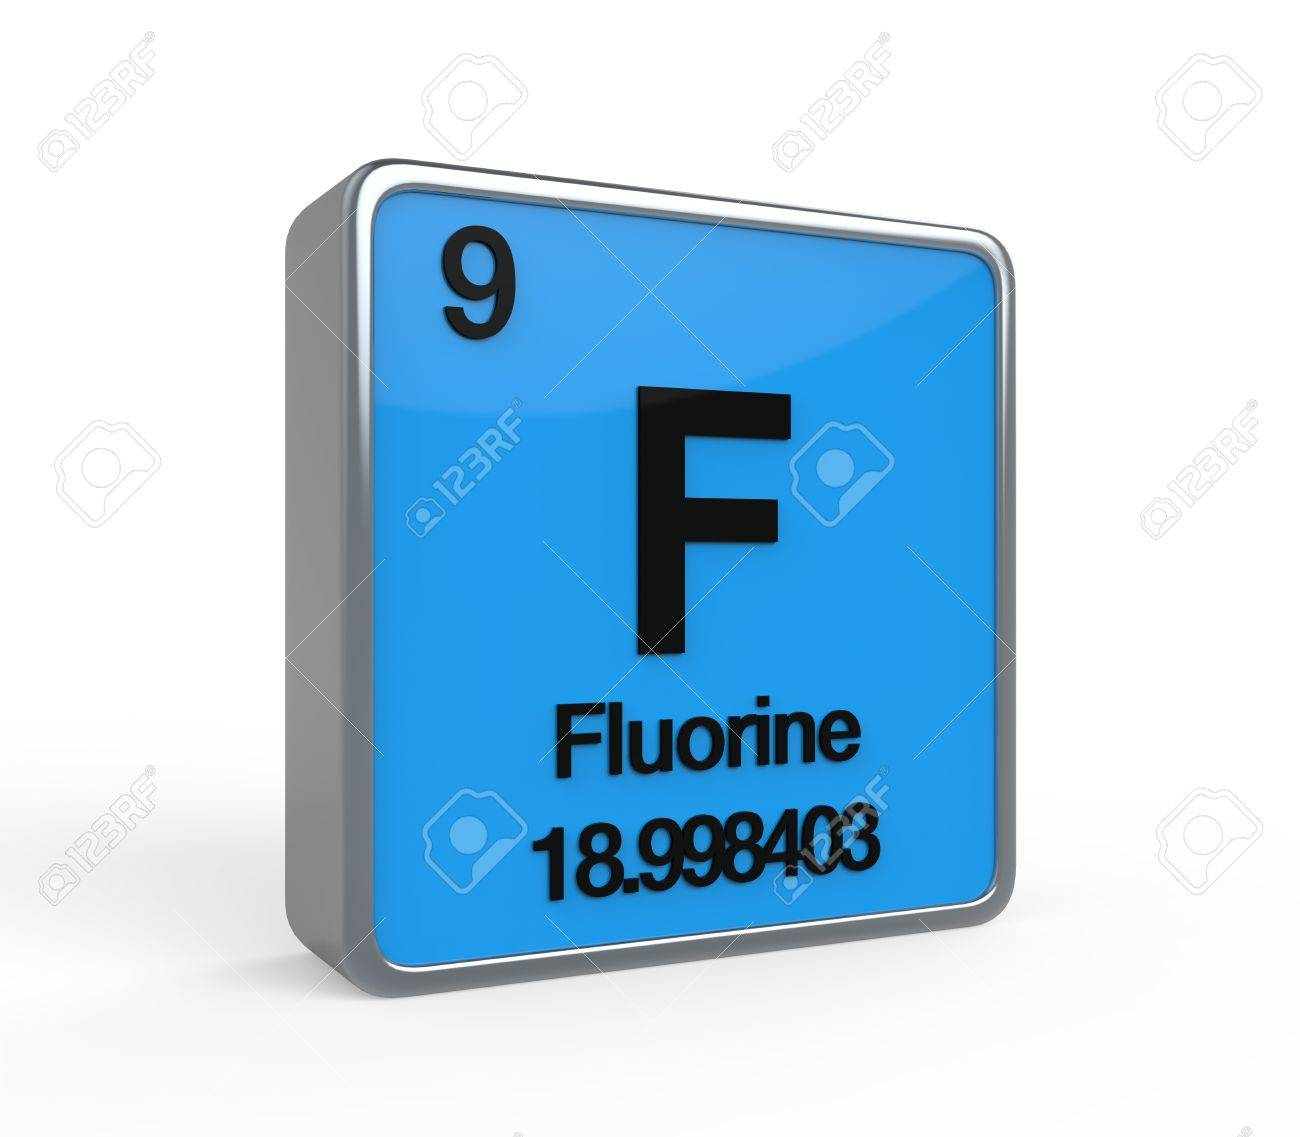 Fluorine Element Periodic Table Stock Photo Picture And Royalty